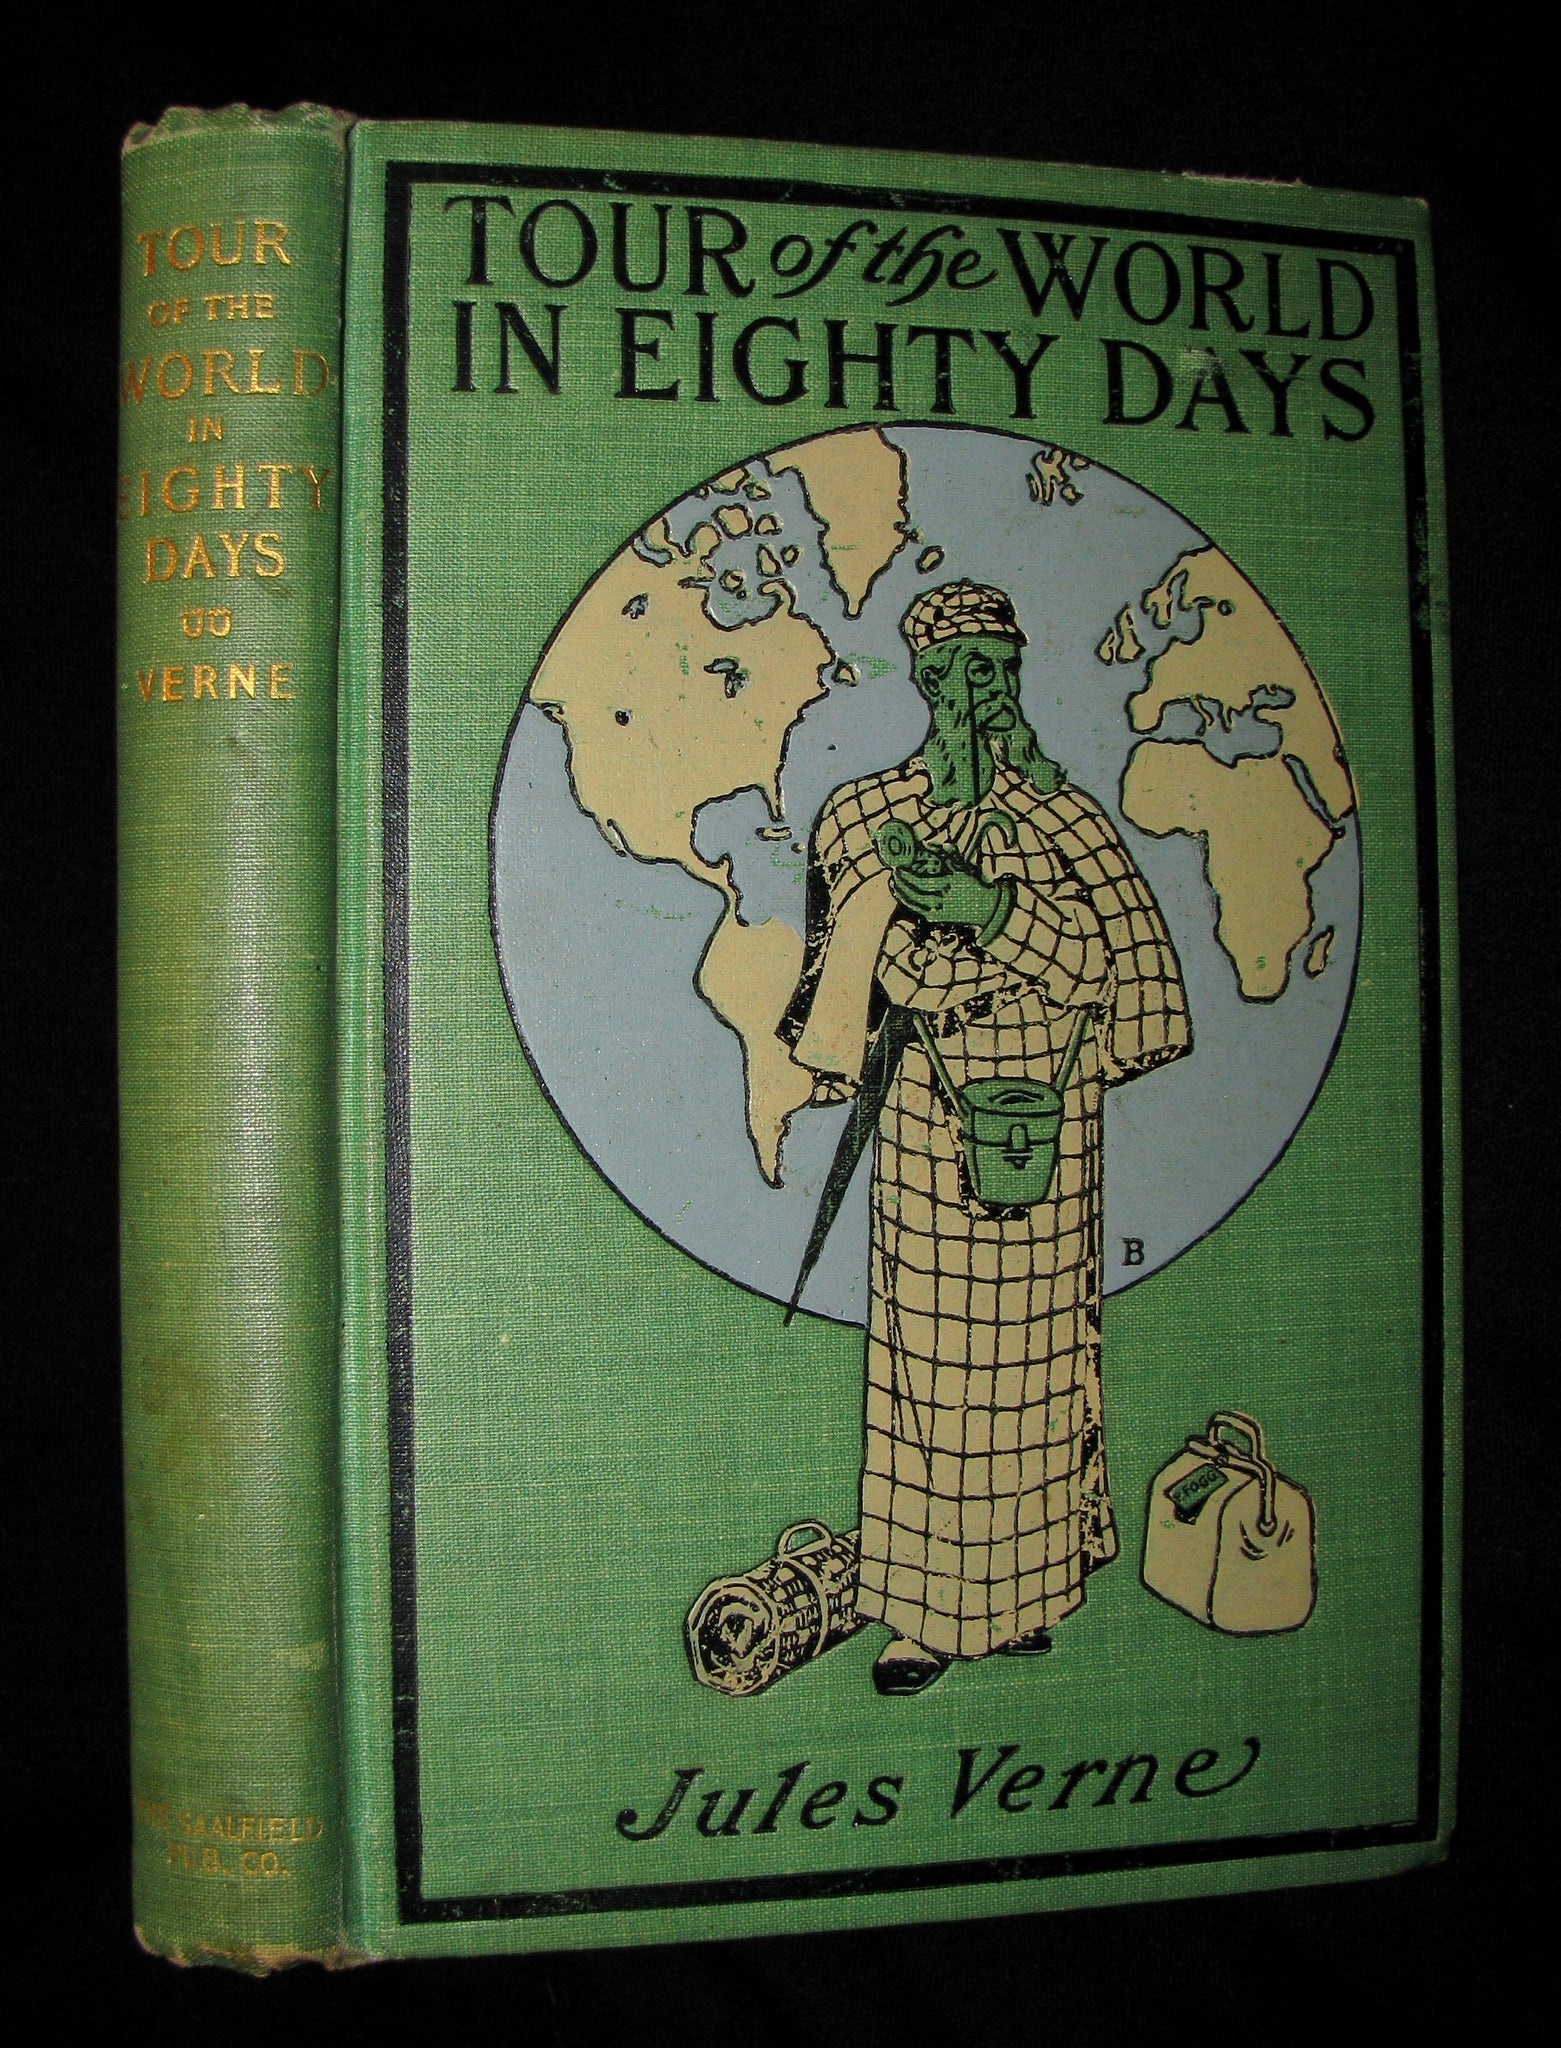 1903 Rare Book - The Tour of the World in Eighty Days by Jules Verne - Rare edition